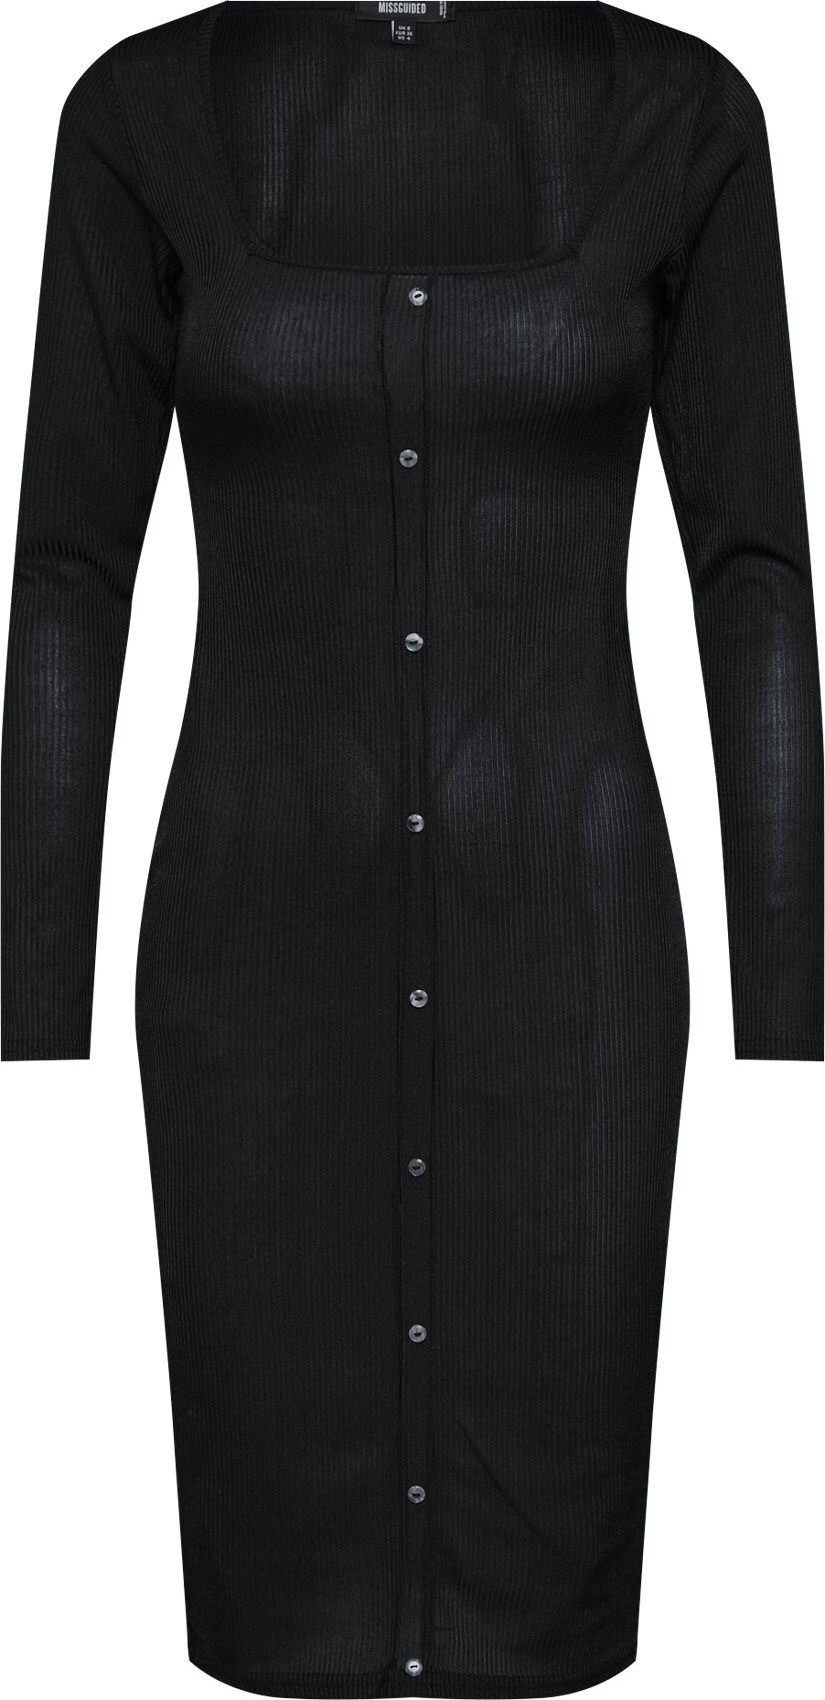 Šaty Slinky Ribbed Long Sleeved Button Front Midi Dress černá Missguided